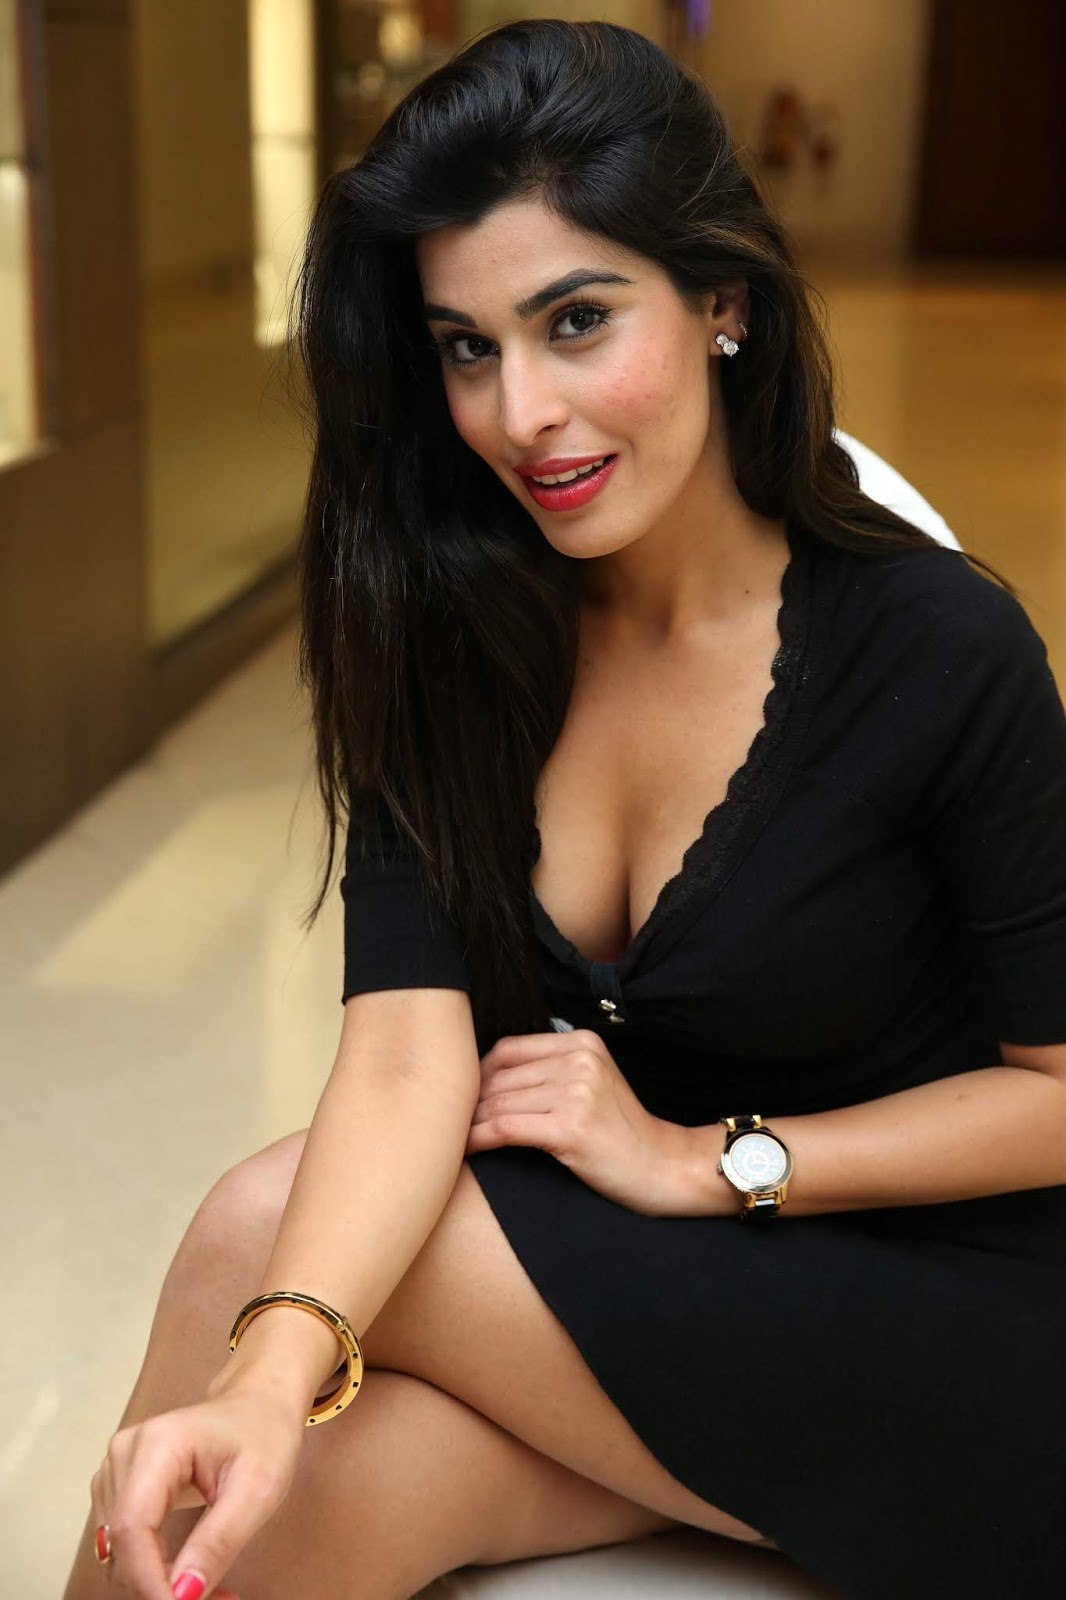 ONLY INDIAN: Hot Indian Girls